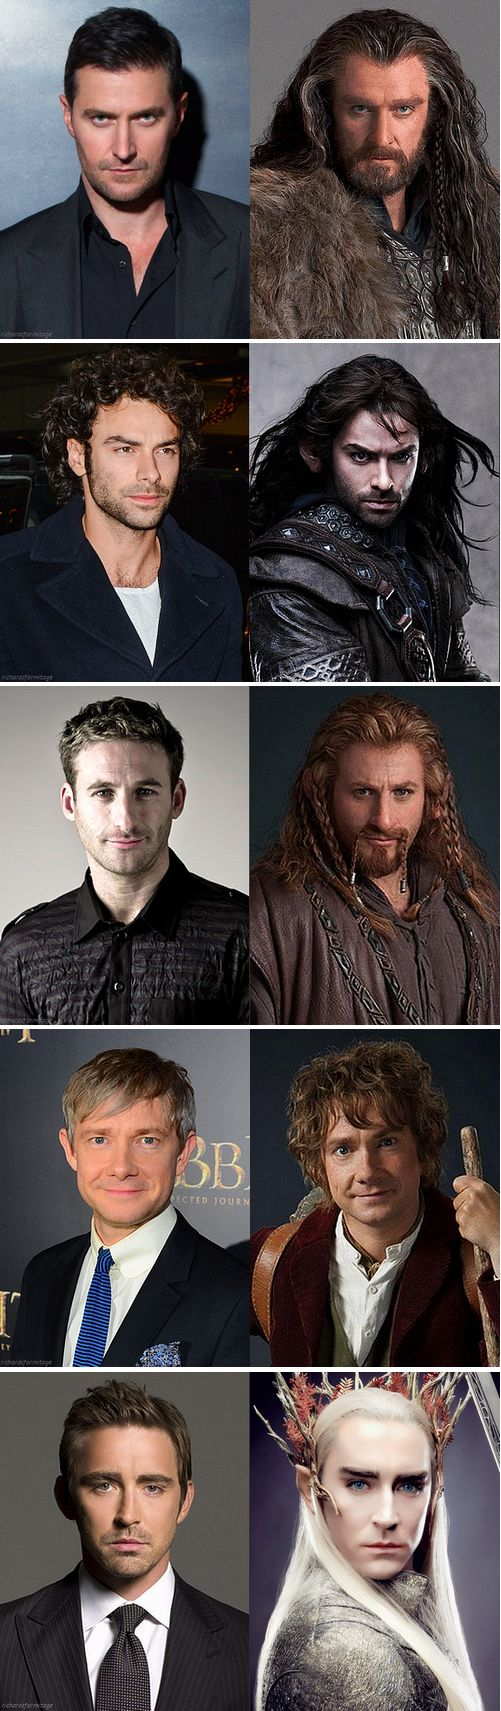 Cast of The Hobbit